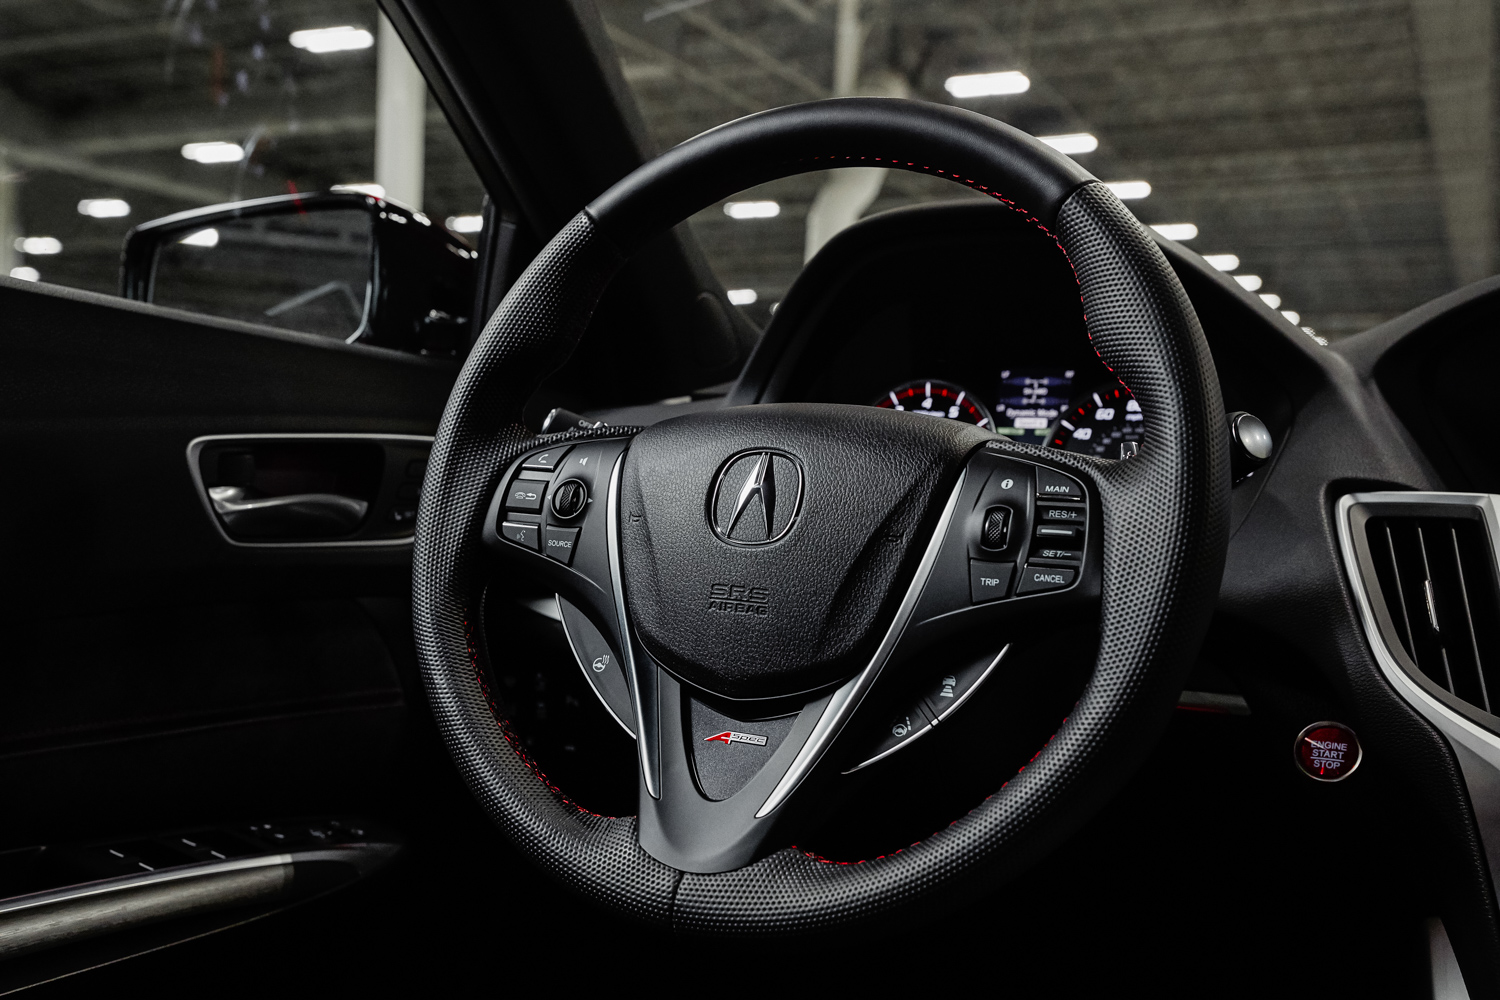 2020 Acura TLX PMC Edition steering wheel